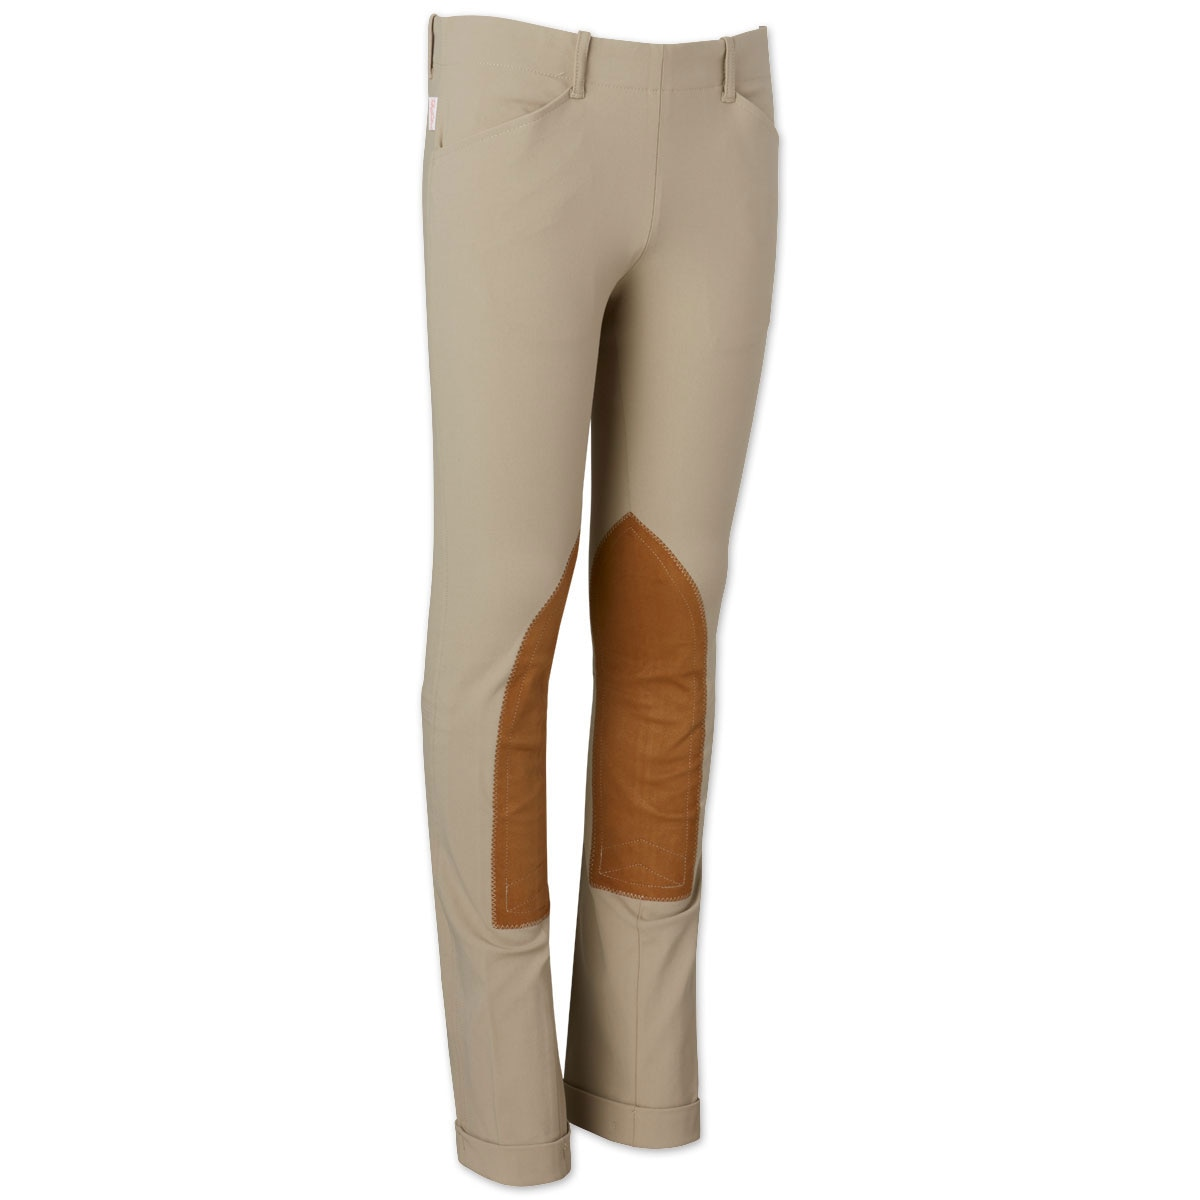 The Tailored Sportsman Girl's TS Low-Rise Jod